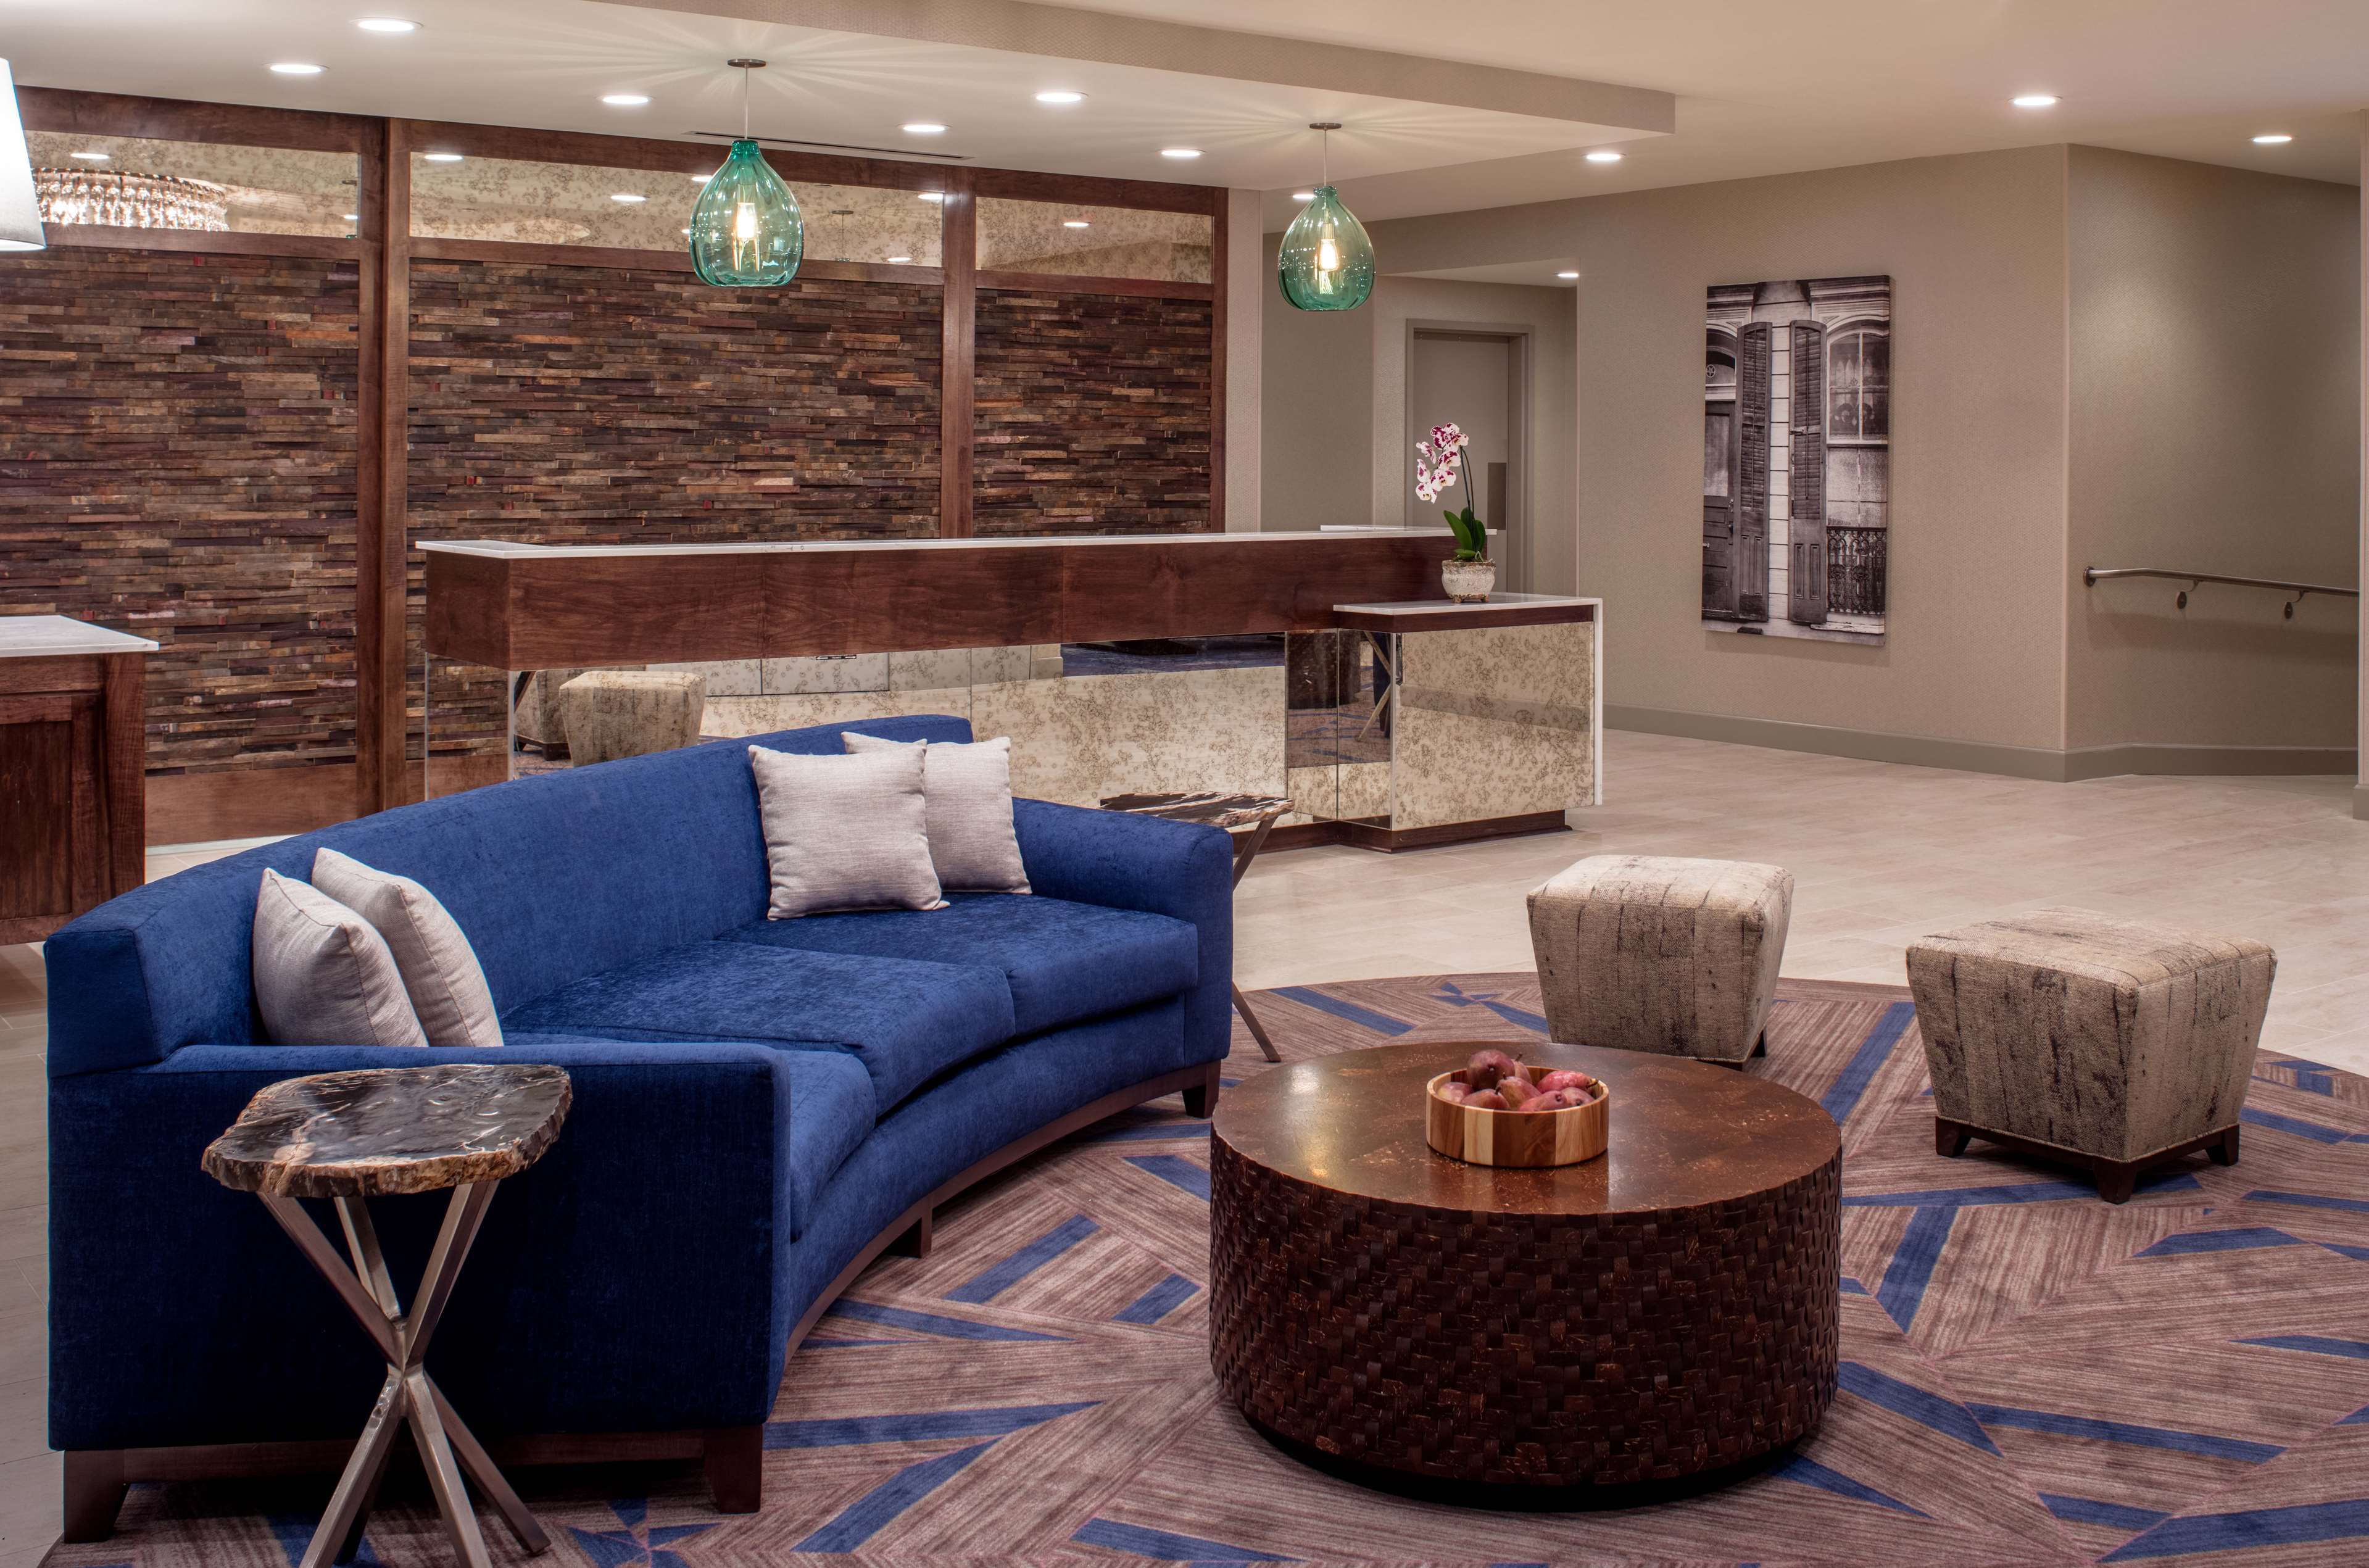 Homewood Suites by Hilton New Orleans French Quarter image 6